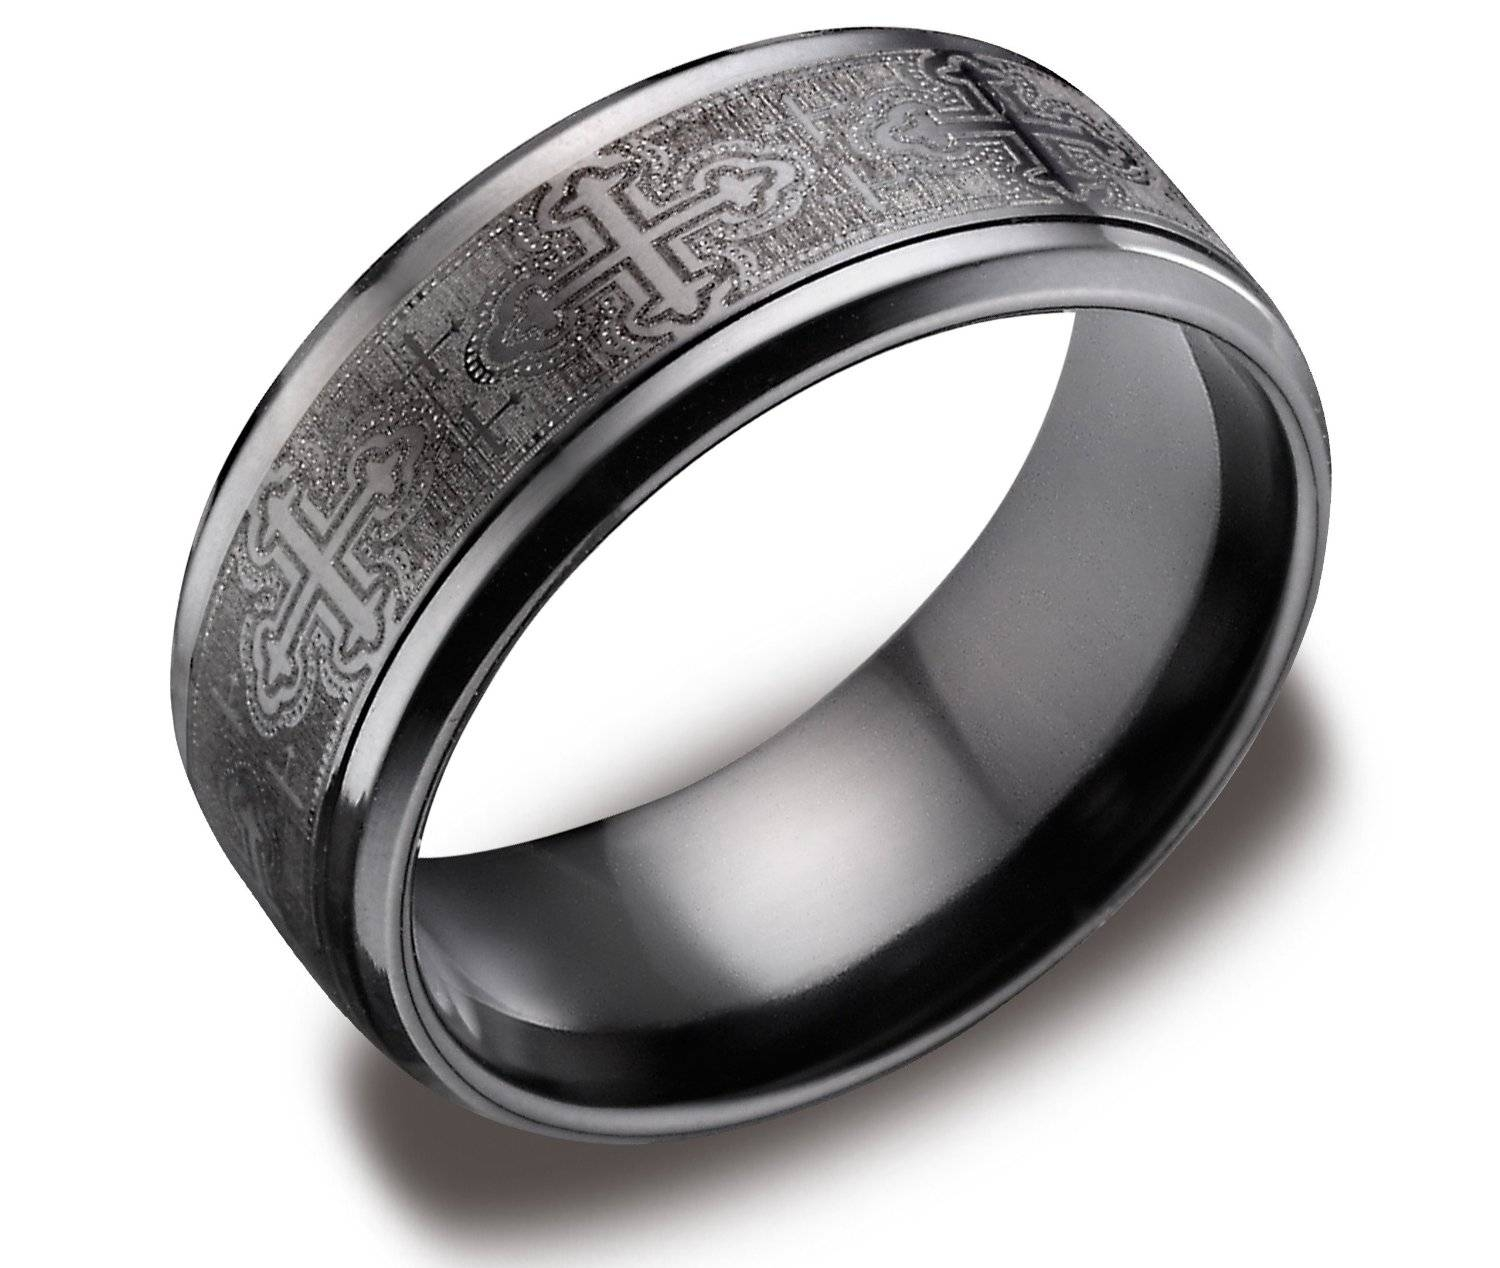 Mens Titanium Wedding Bands Are No Less Appealing Than Gold Regarding Black Titanium Wedding Bands For Men (View 8 of 15)